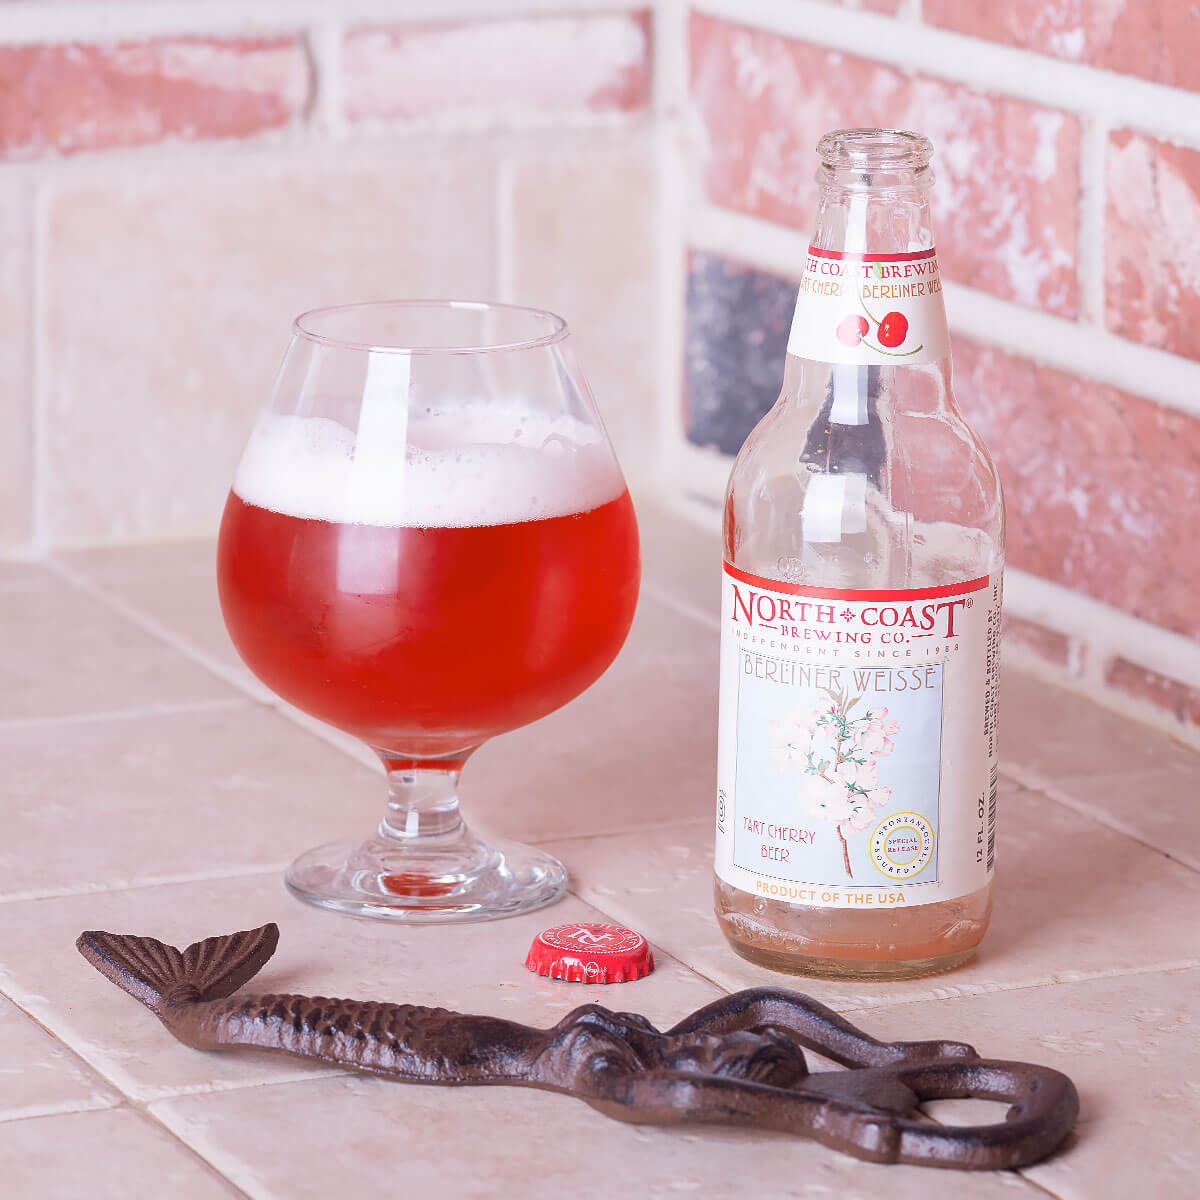 Tart Cherry Berliner Weisse is a German-style Berliner Weisse by North Coast Brewing Co. that blends tart cherry and sourdough bread.